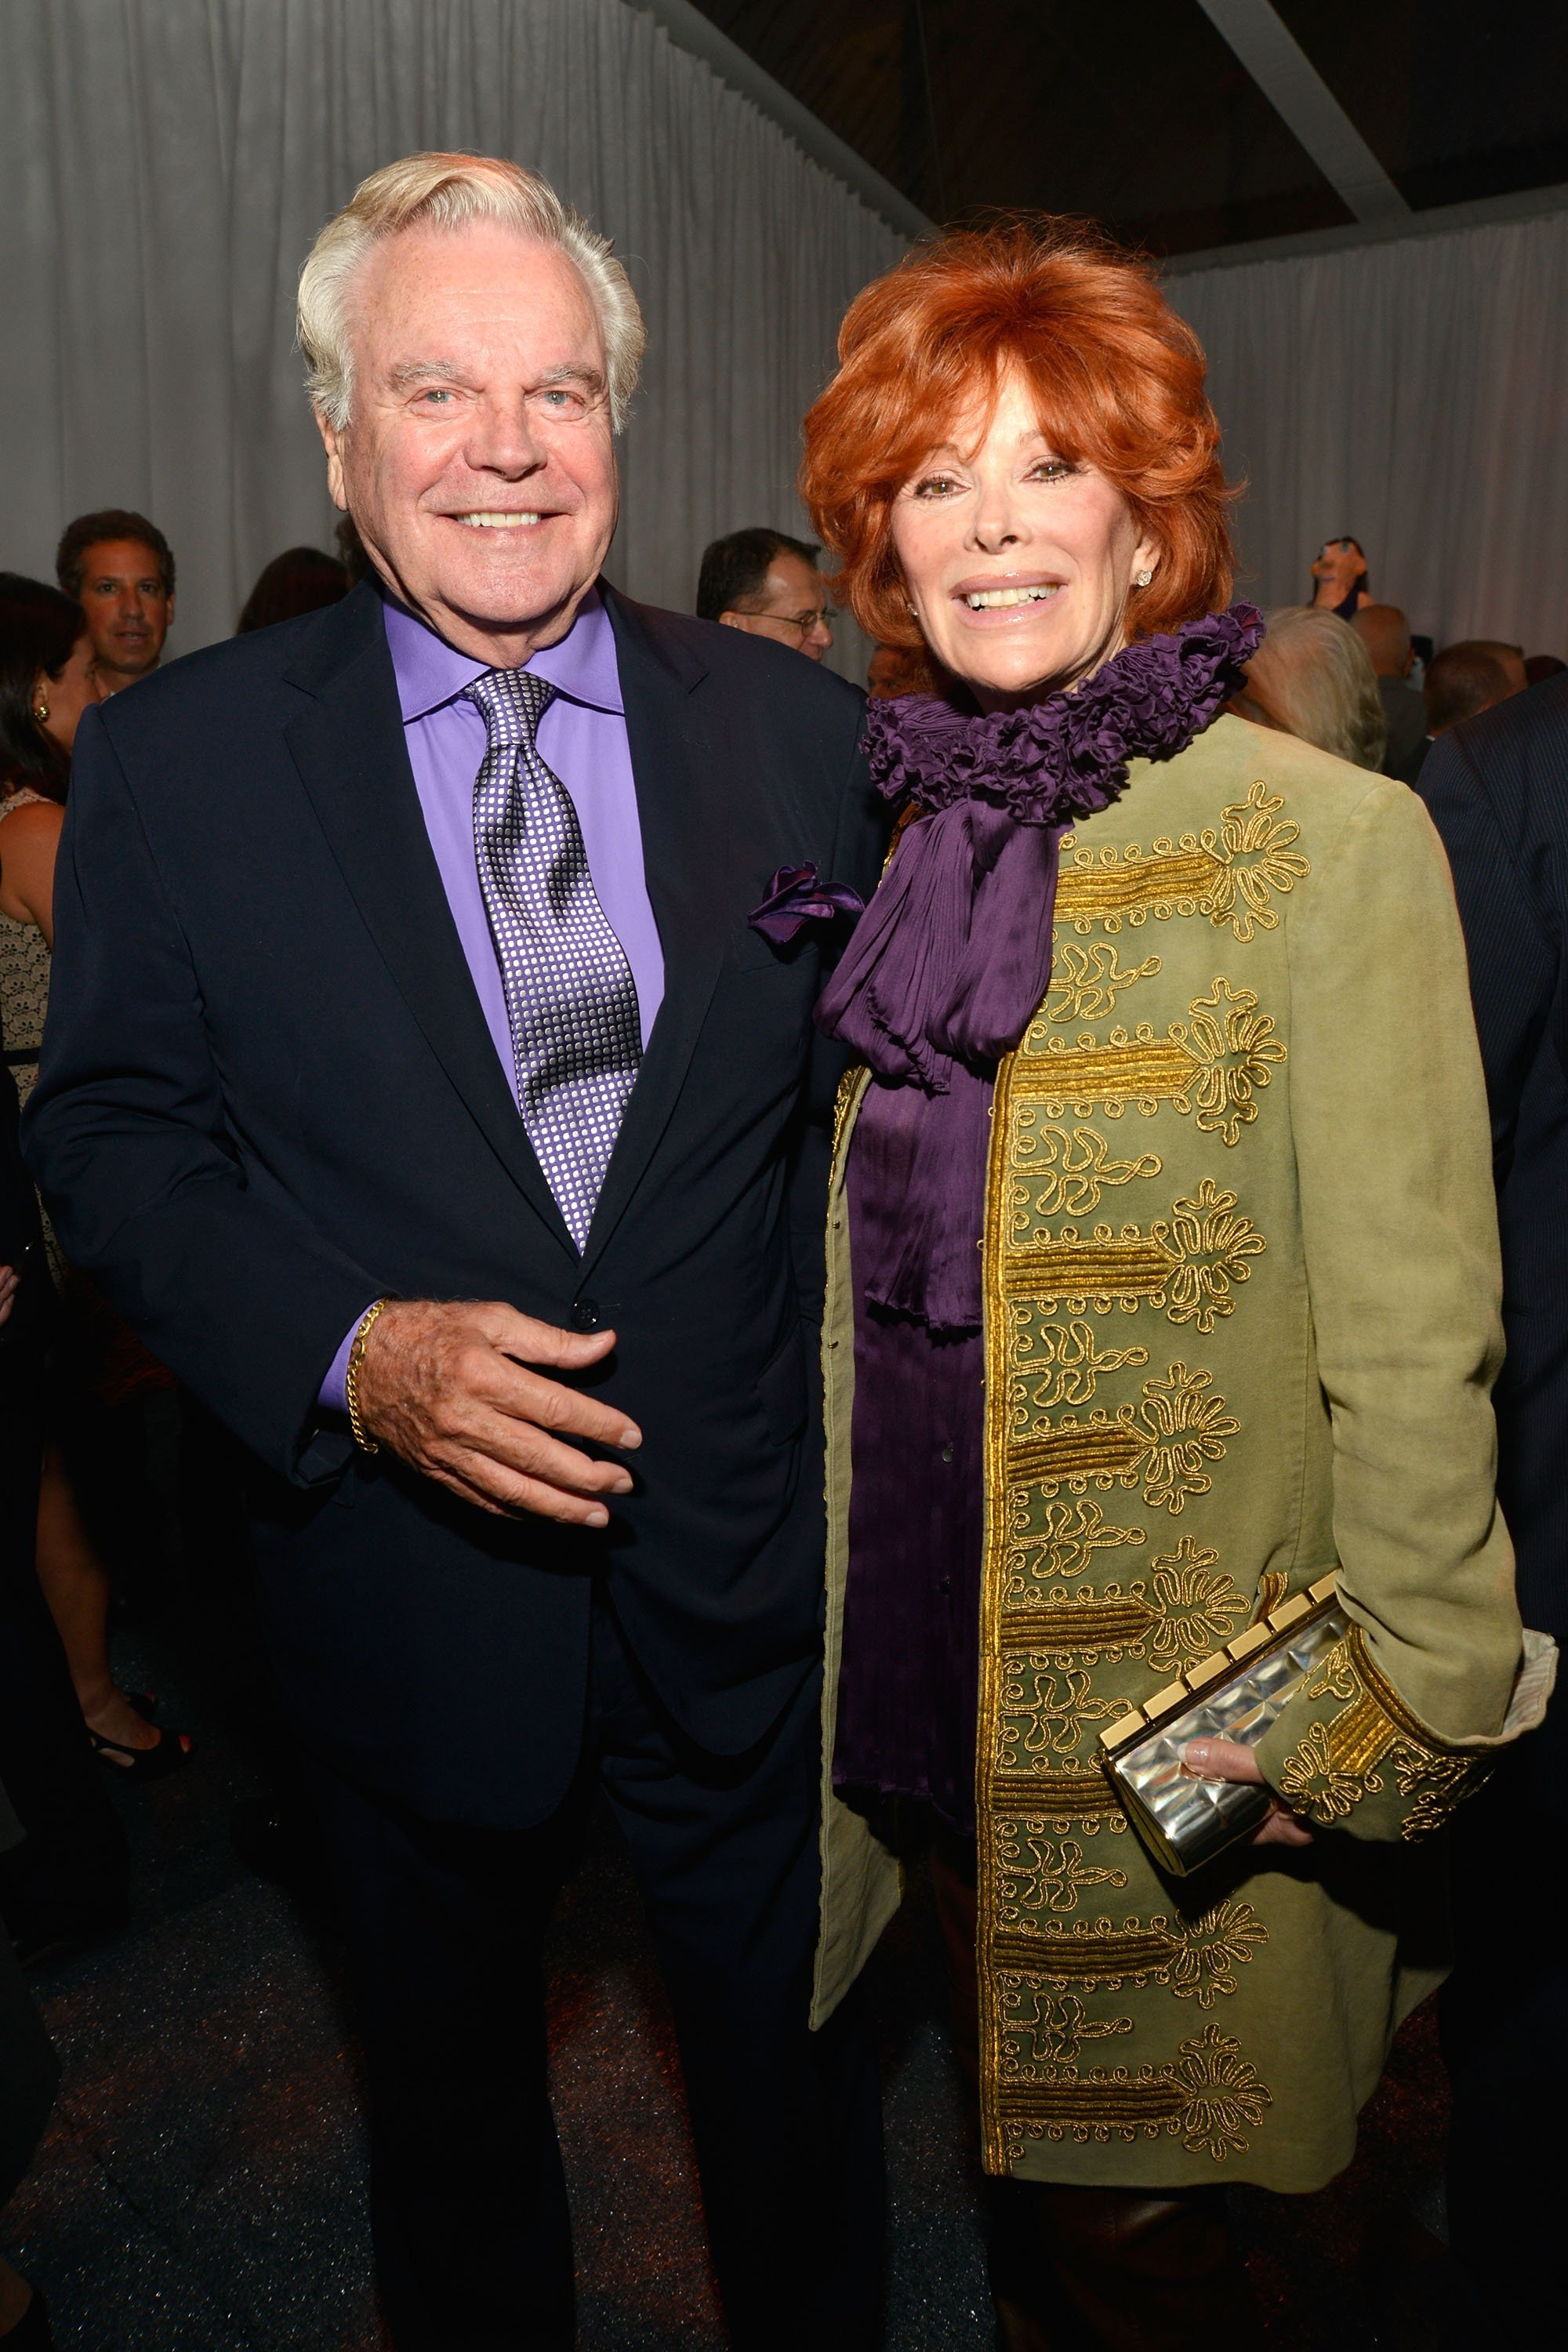 Robert Wagner and Jill St. John attend the Studio in a School's 35th Anniversary gala at Seagram Building on October 2, 2012, in New York City. | Source: Getty Images.